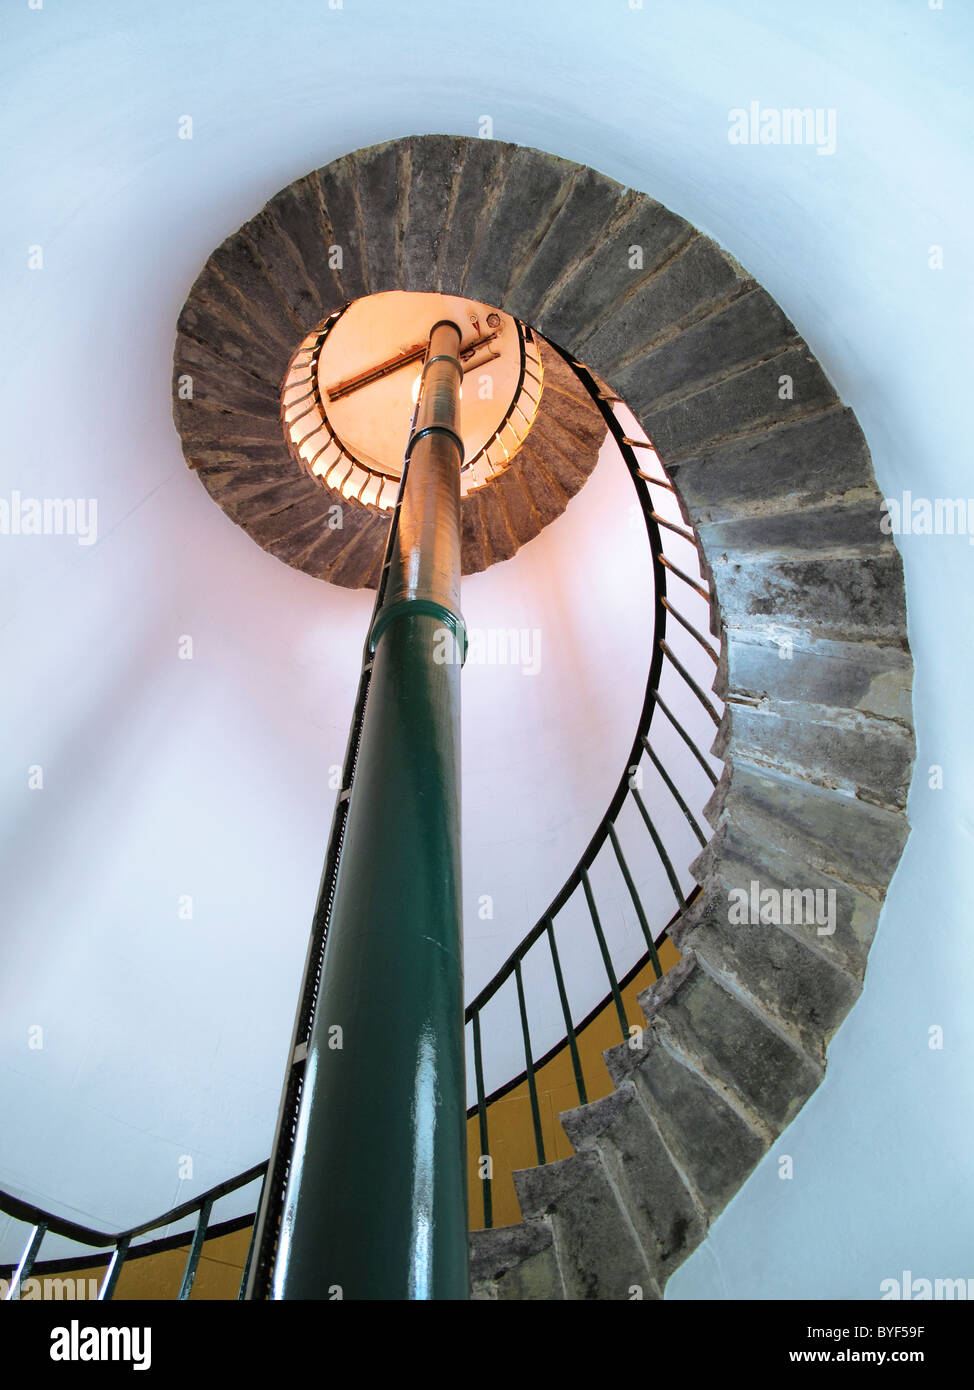 Spiral staircase in a lighthouse - Stock Image